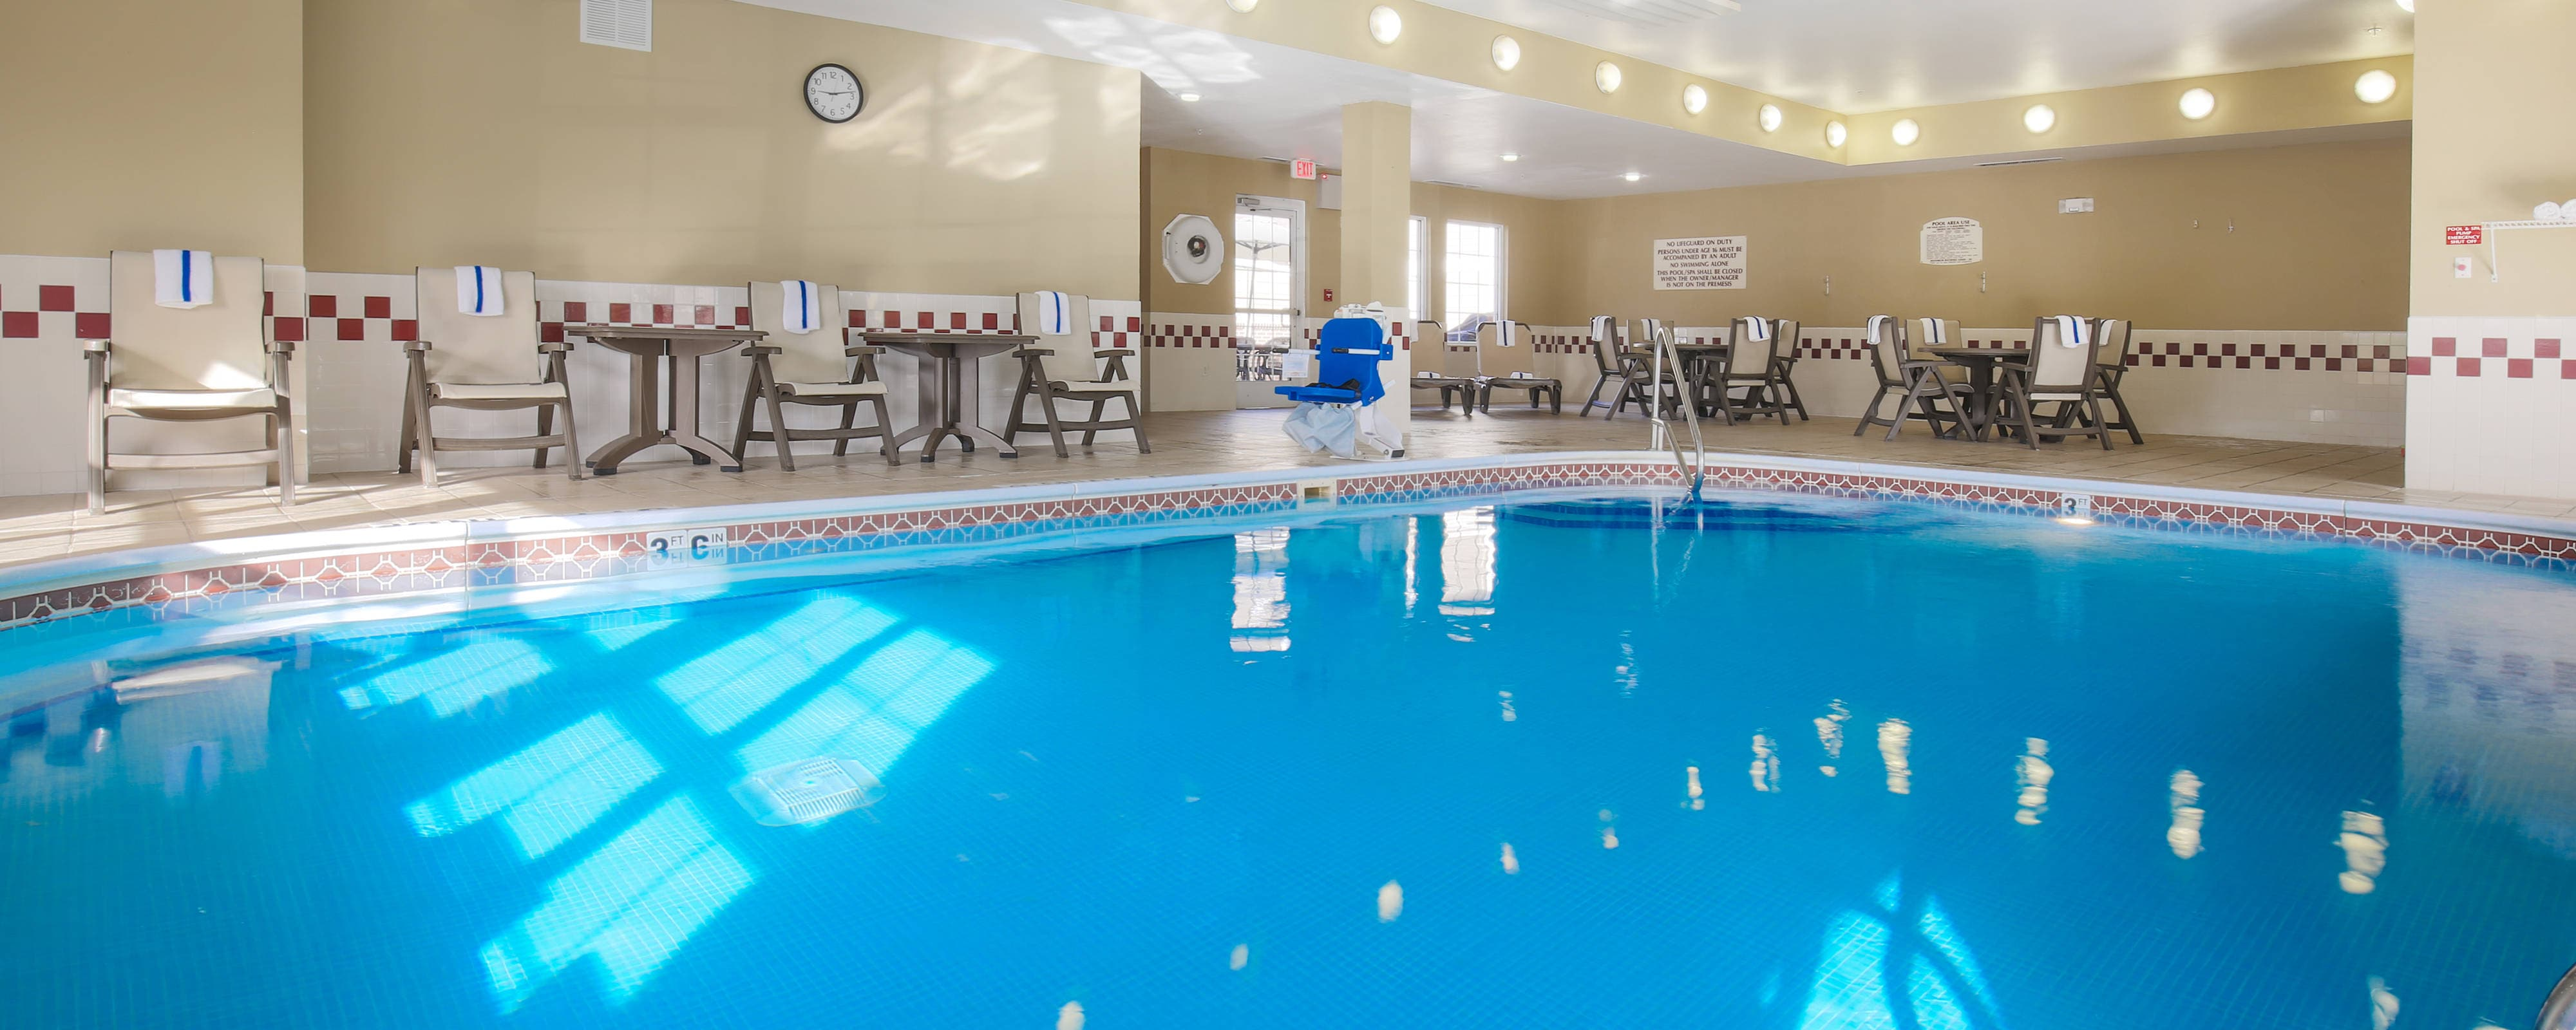 Deptford New Jersey Indoor Pool